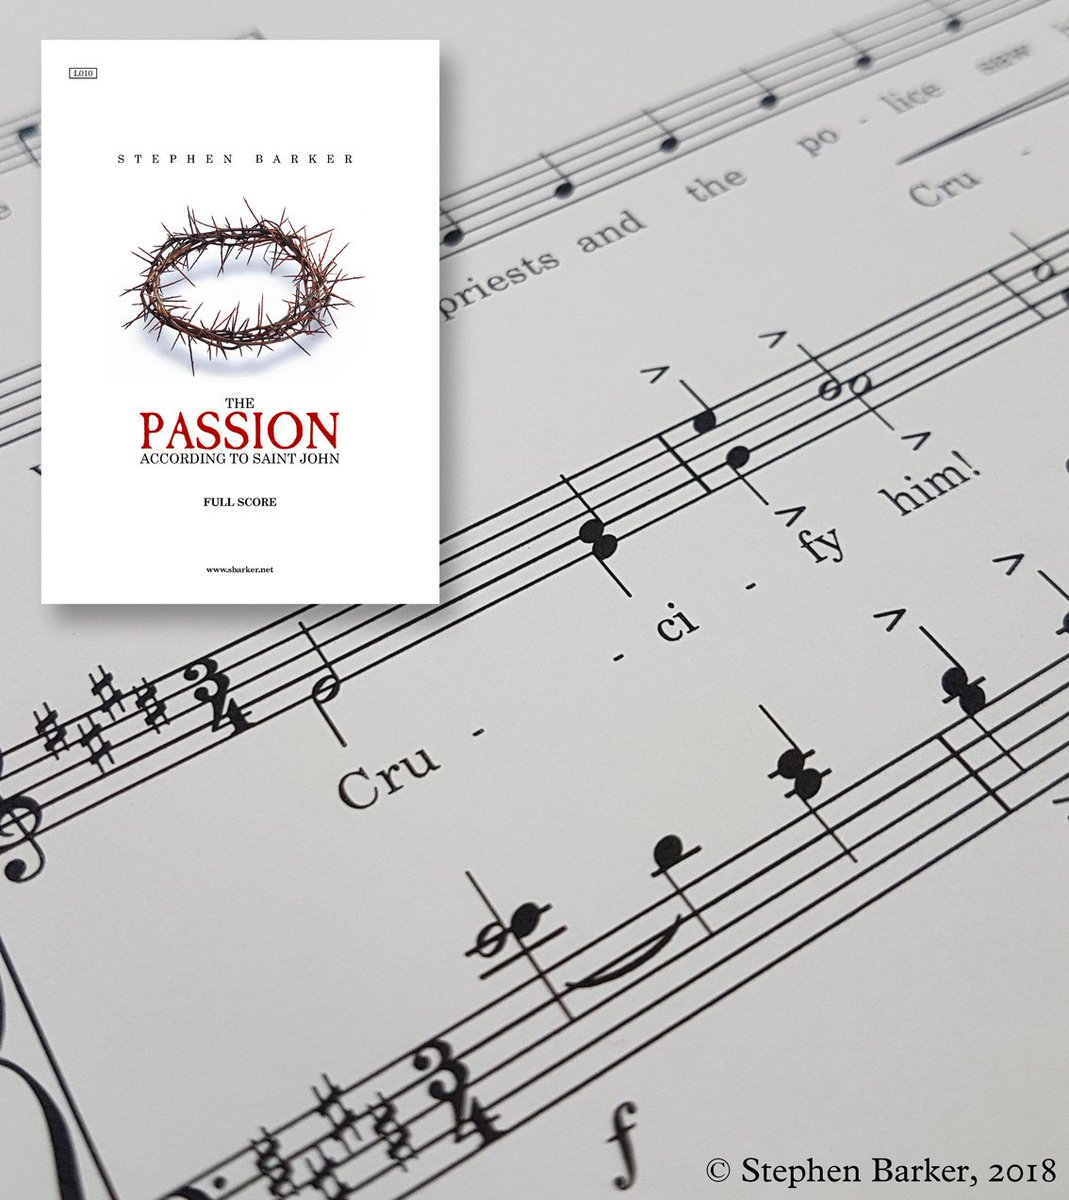 Looking forward to hearing the choir of St Stephen's Church, Canterbury, sing the first performance of my setting of the #Passion according to St John on #GoodFriday at 2pm. As always, I'm grateful for their willingness to sing my music! #HolyWeek2018